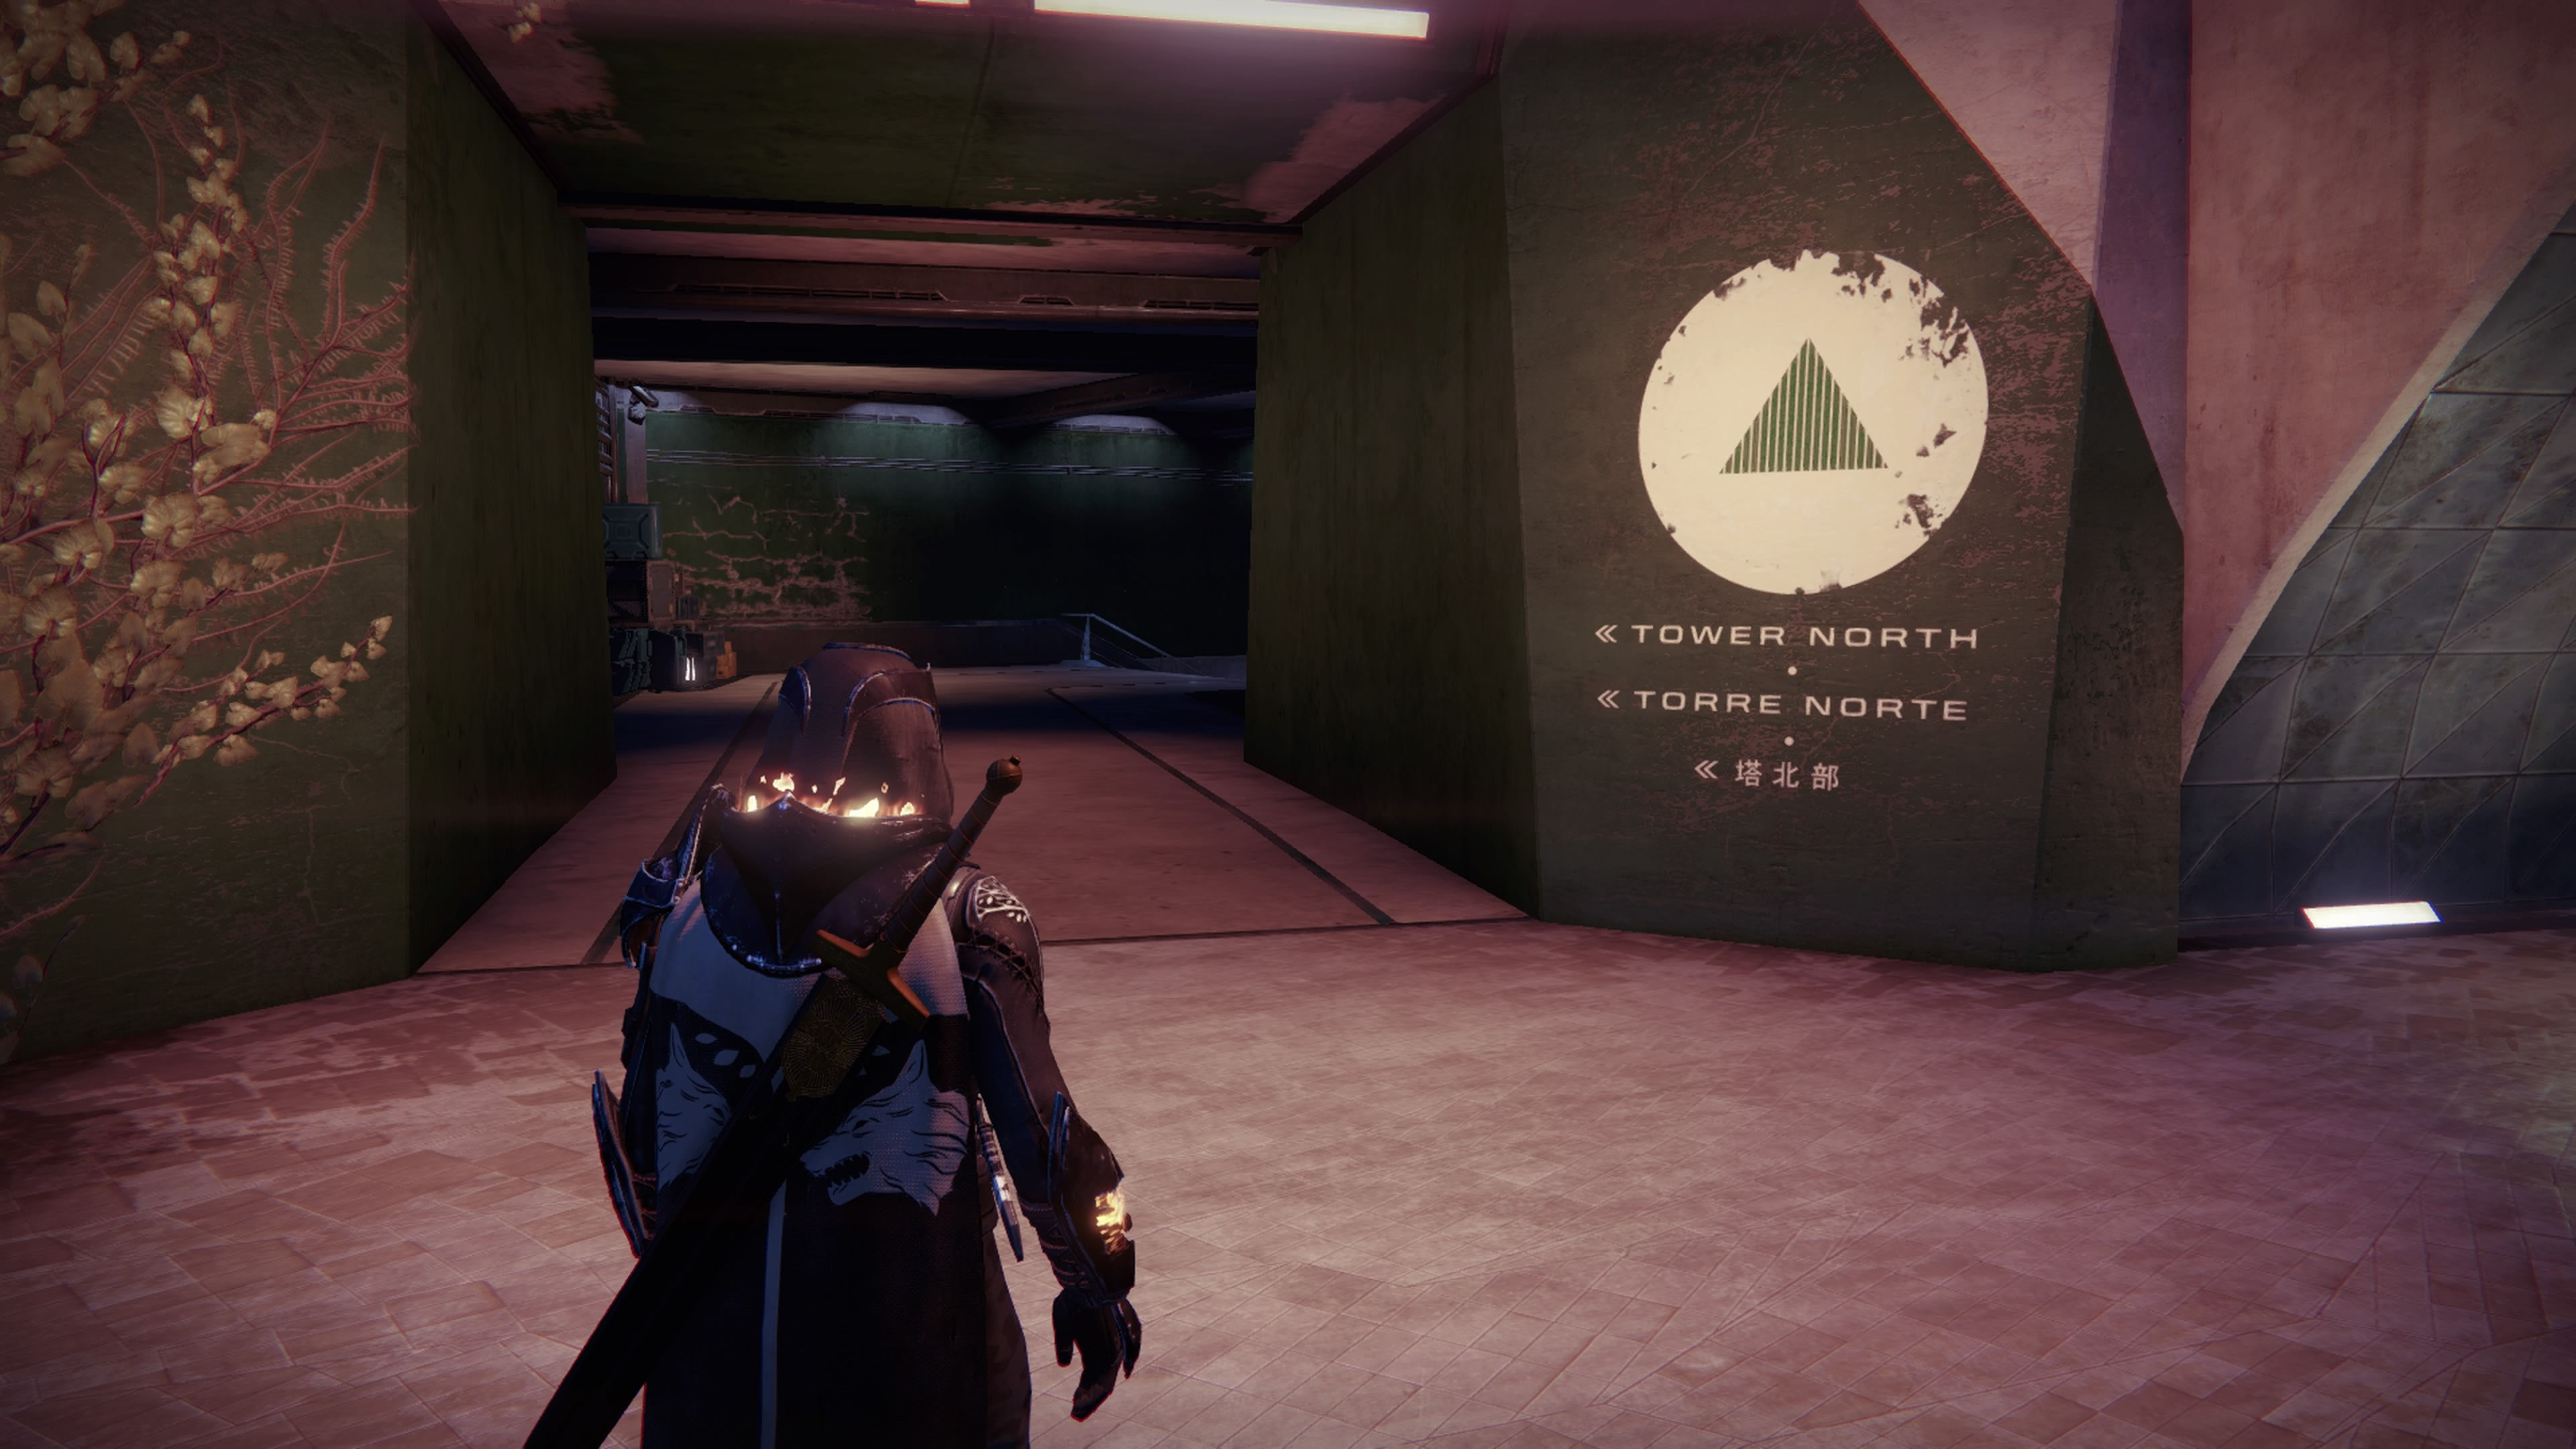 The Speaker is located in Tower North, which your probably already knew.